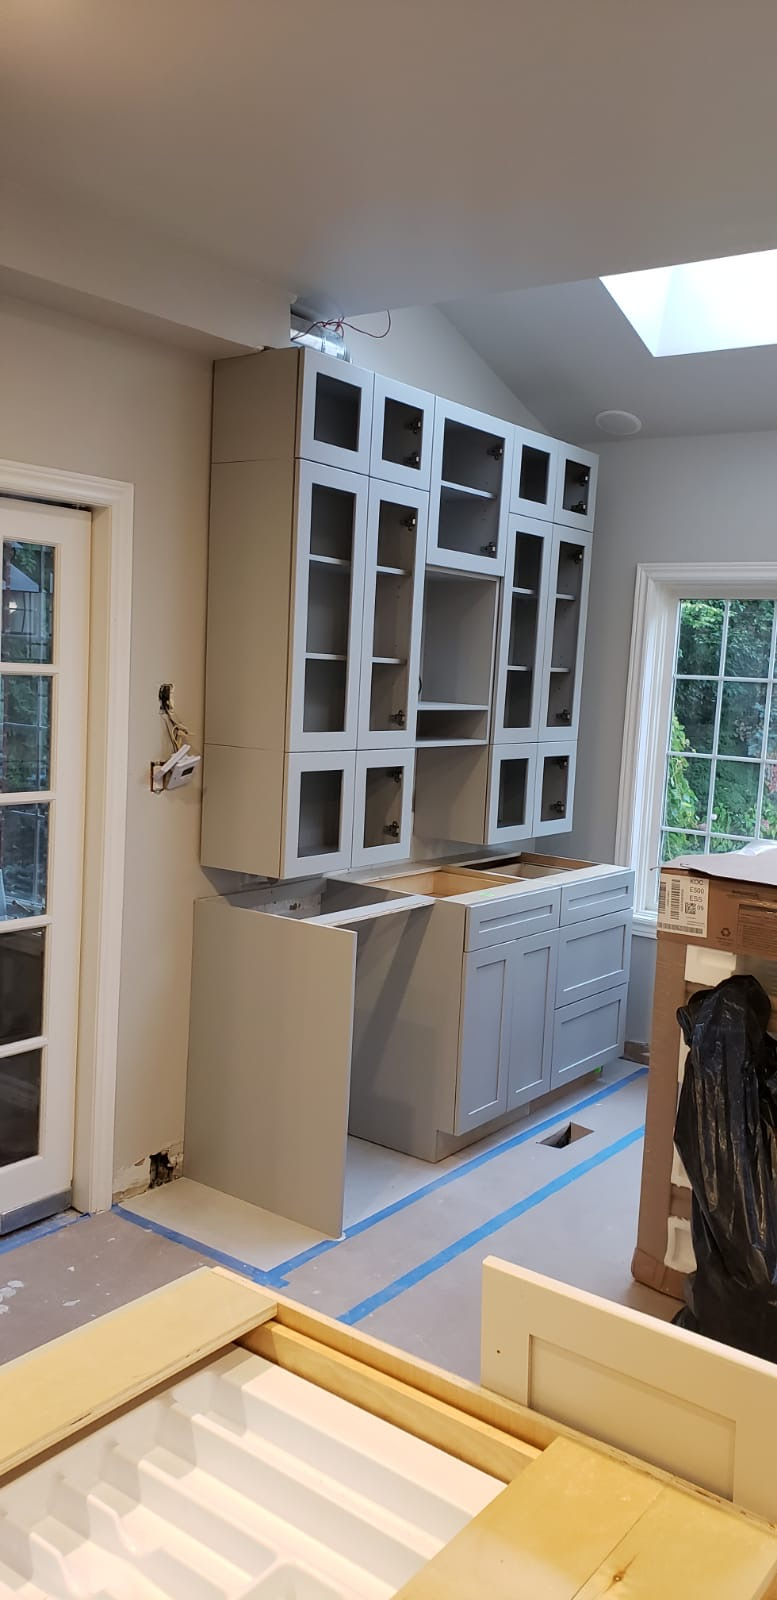 of your kitchen space